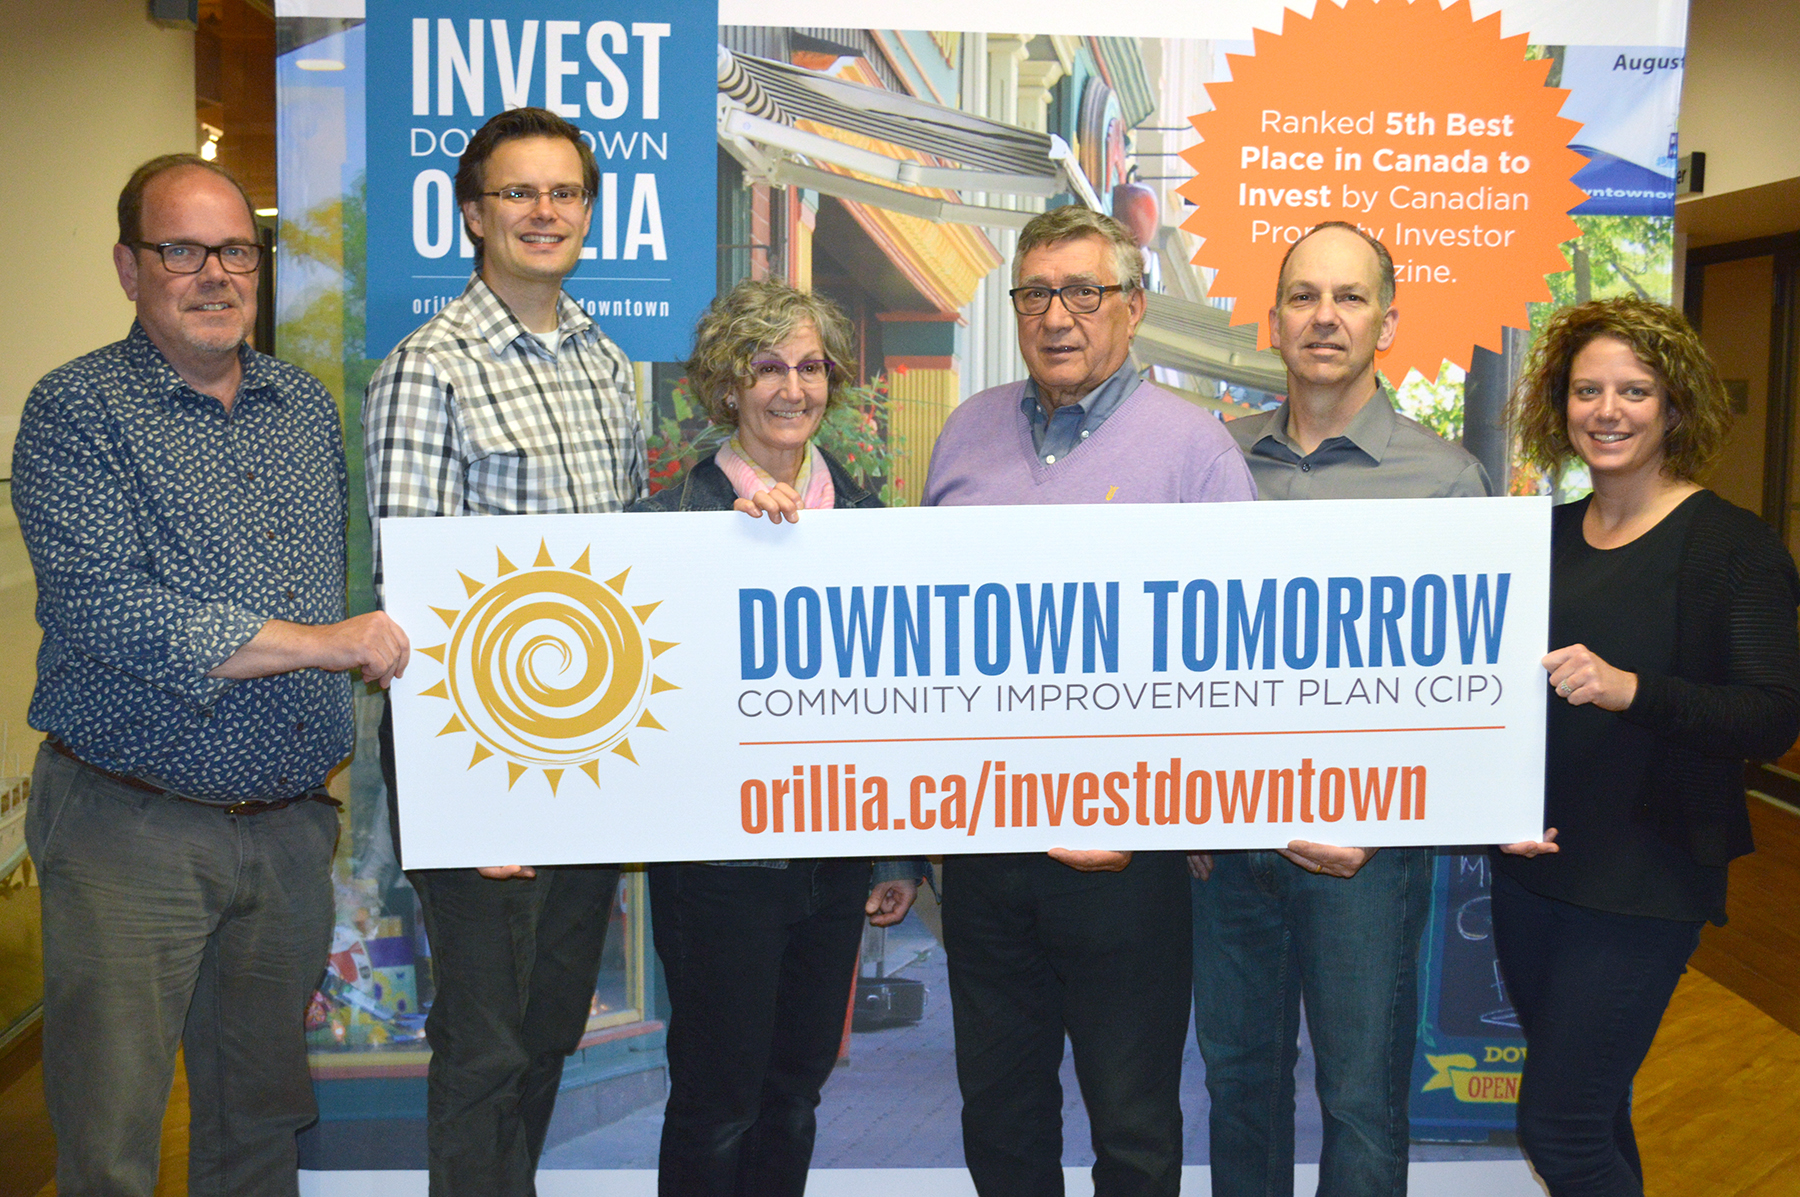 From left, Ian Bromley, Director of Economic Development, Jeff Pitcher, grant recipient, Susan Willsey, grant recipient, Coun. Ralph Cipolla, Ron Spencer, Downtown Orillia Management Board, Lisa Thomson-Roop, Downtown Orillia Management Board are pictured at the announcement of the second round of grants as part of the Downtown Tomorrow Community Improvement Plan Grant Program on May 24, 2017.